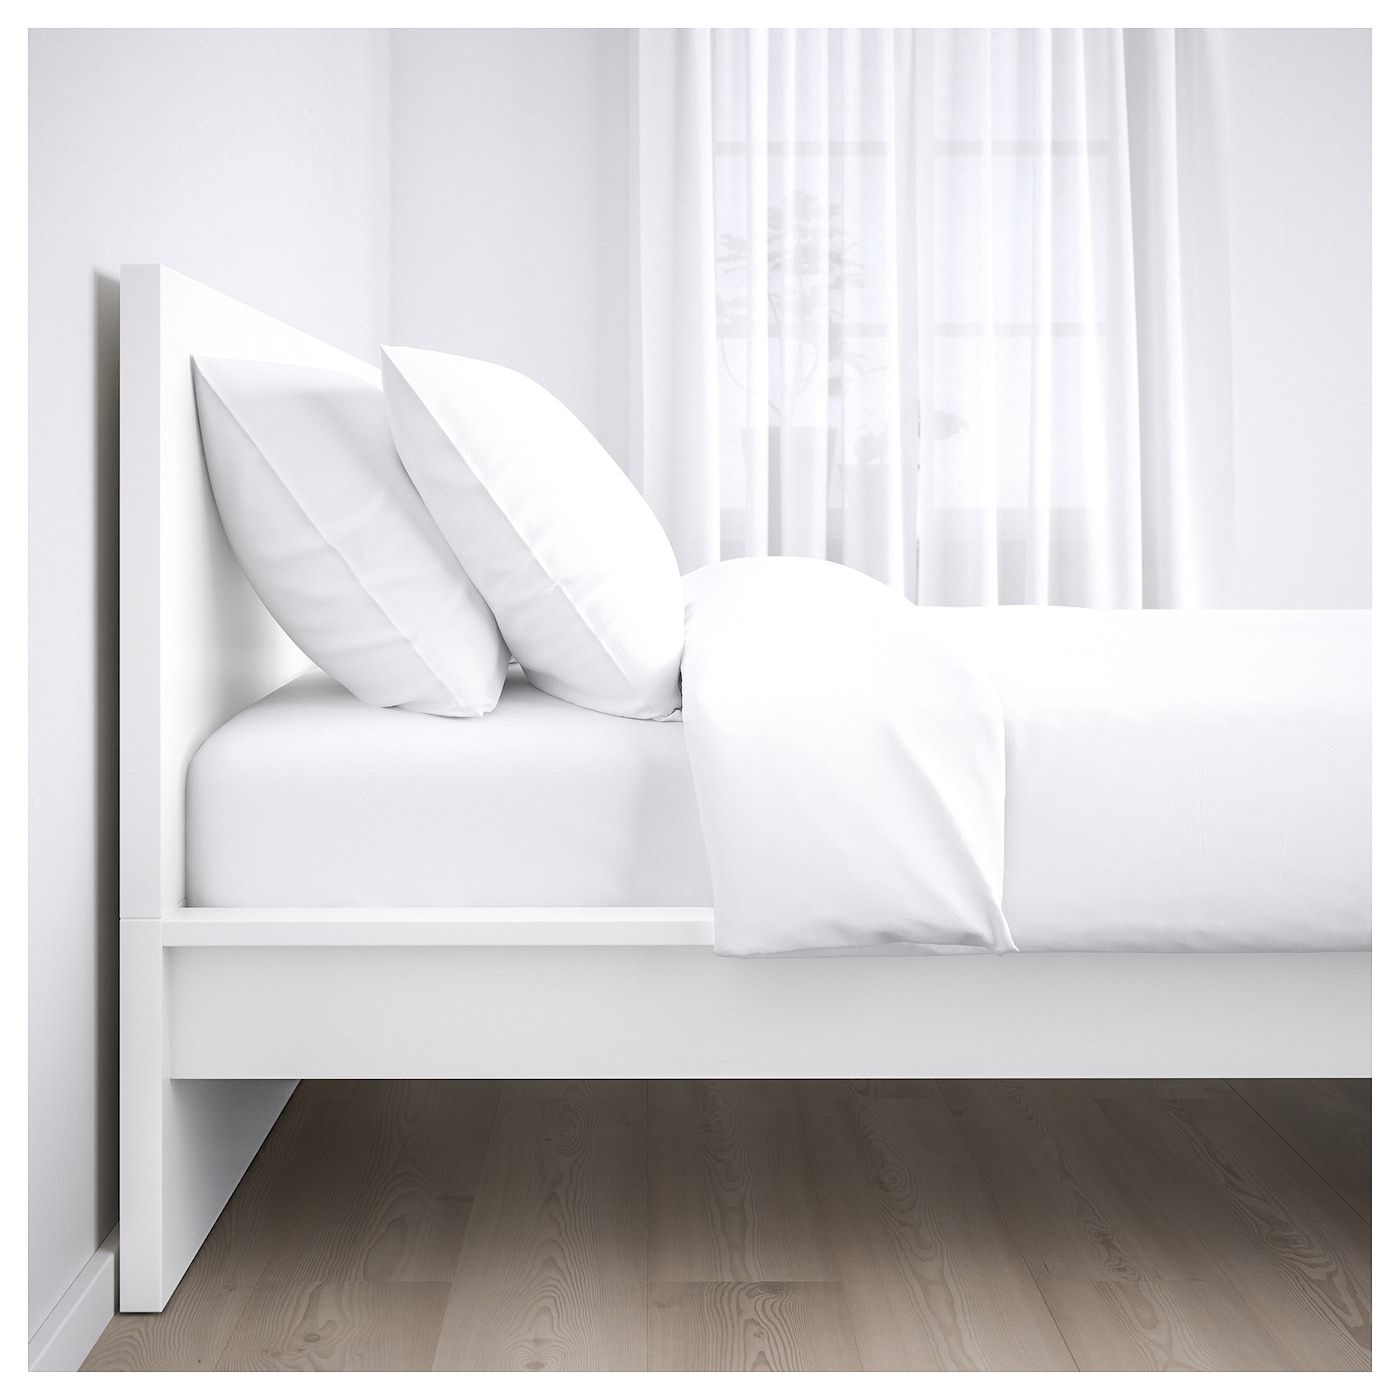 Malm White Luroy Bed Frame High 140x200 Cm Ikea In 2020 Malm Bed Frame White Bed Frame Malm Bed